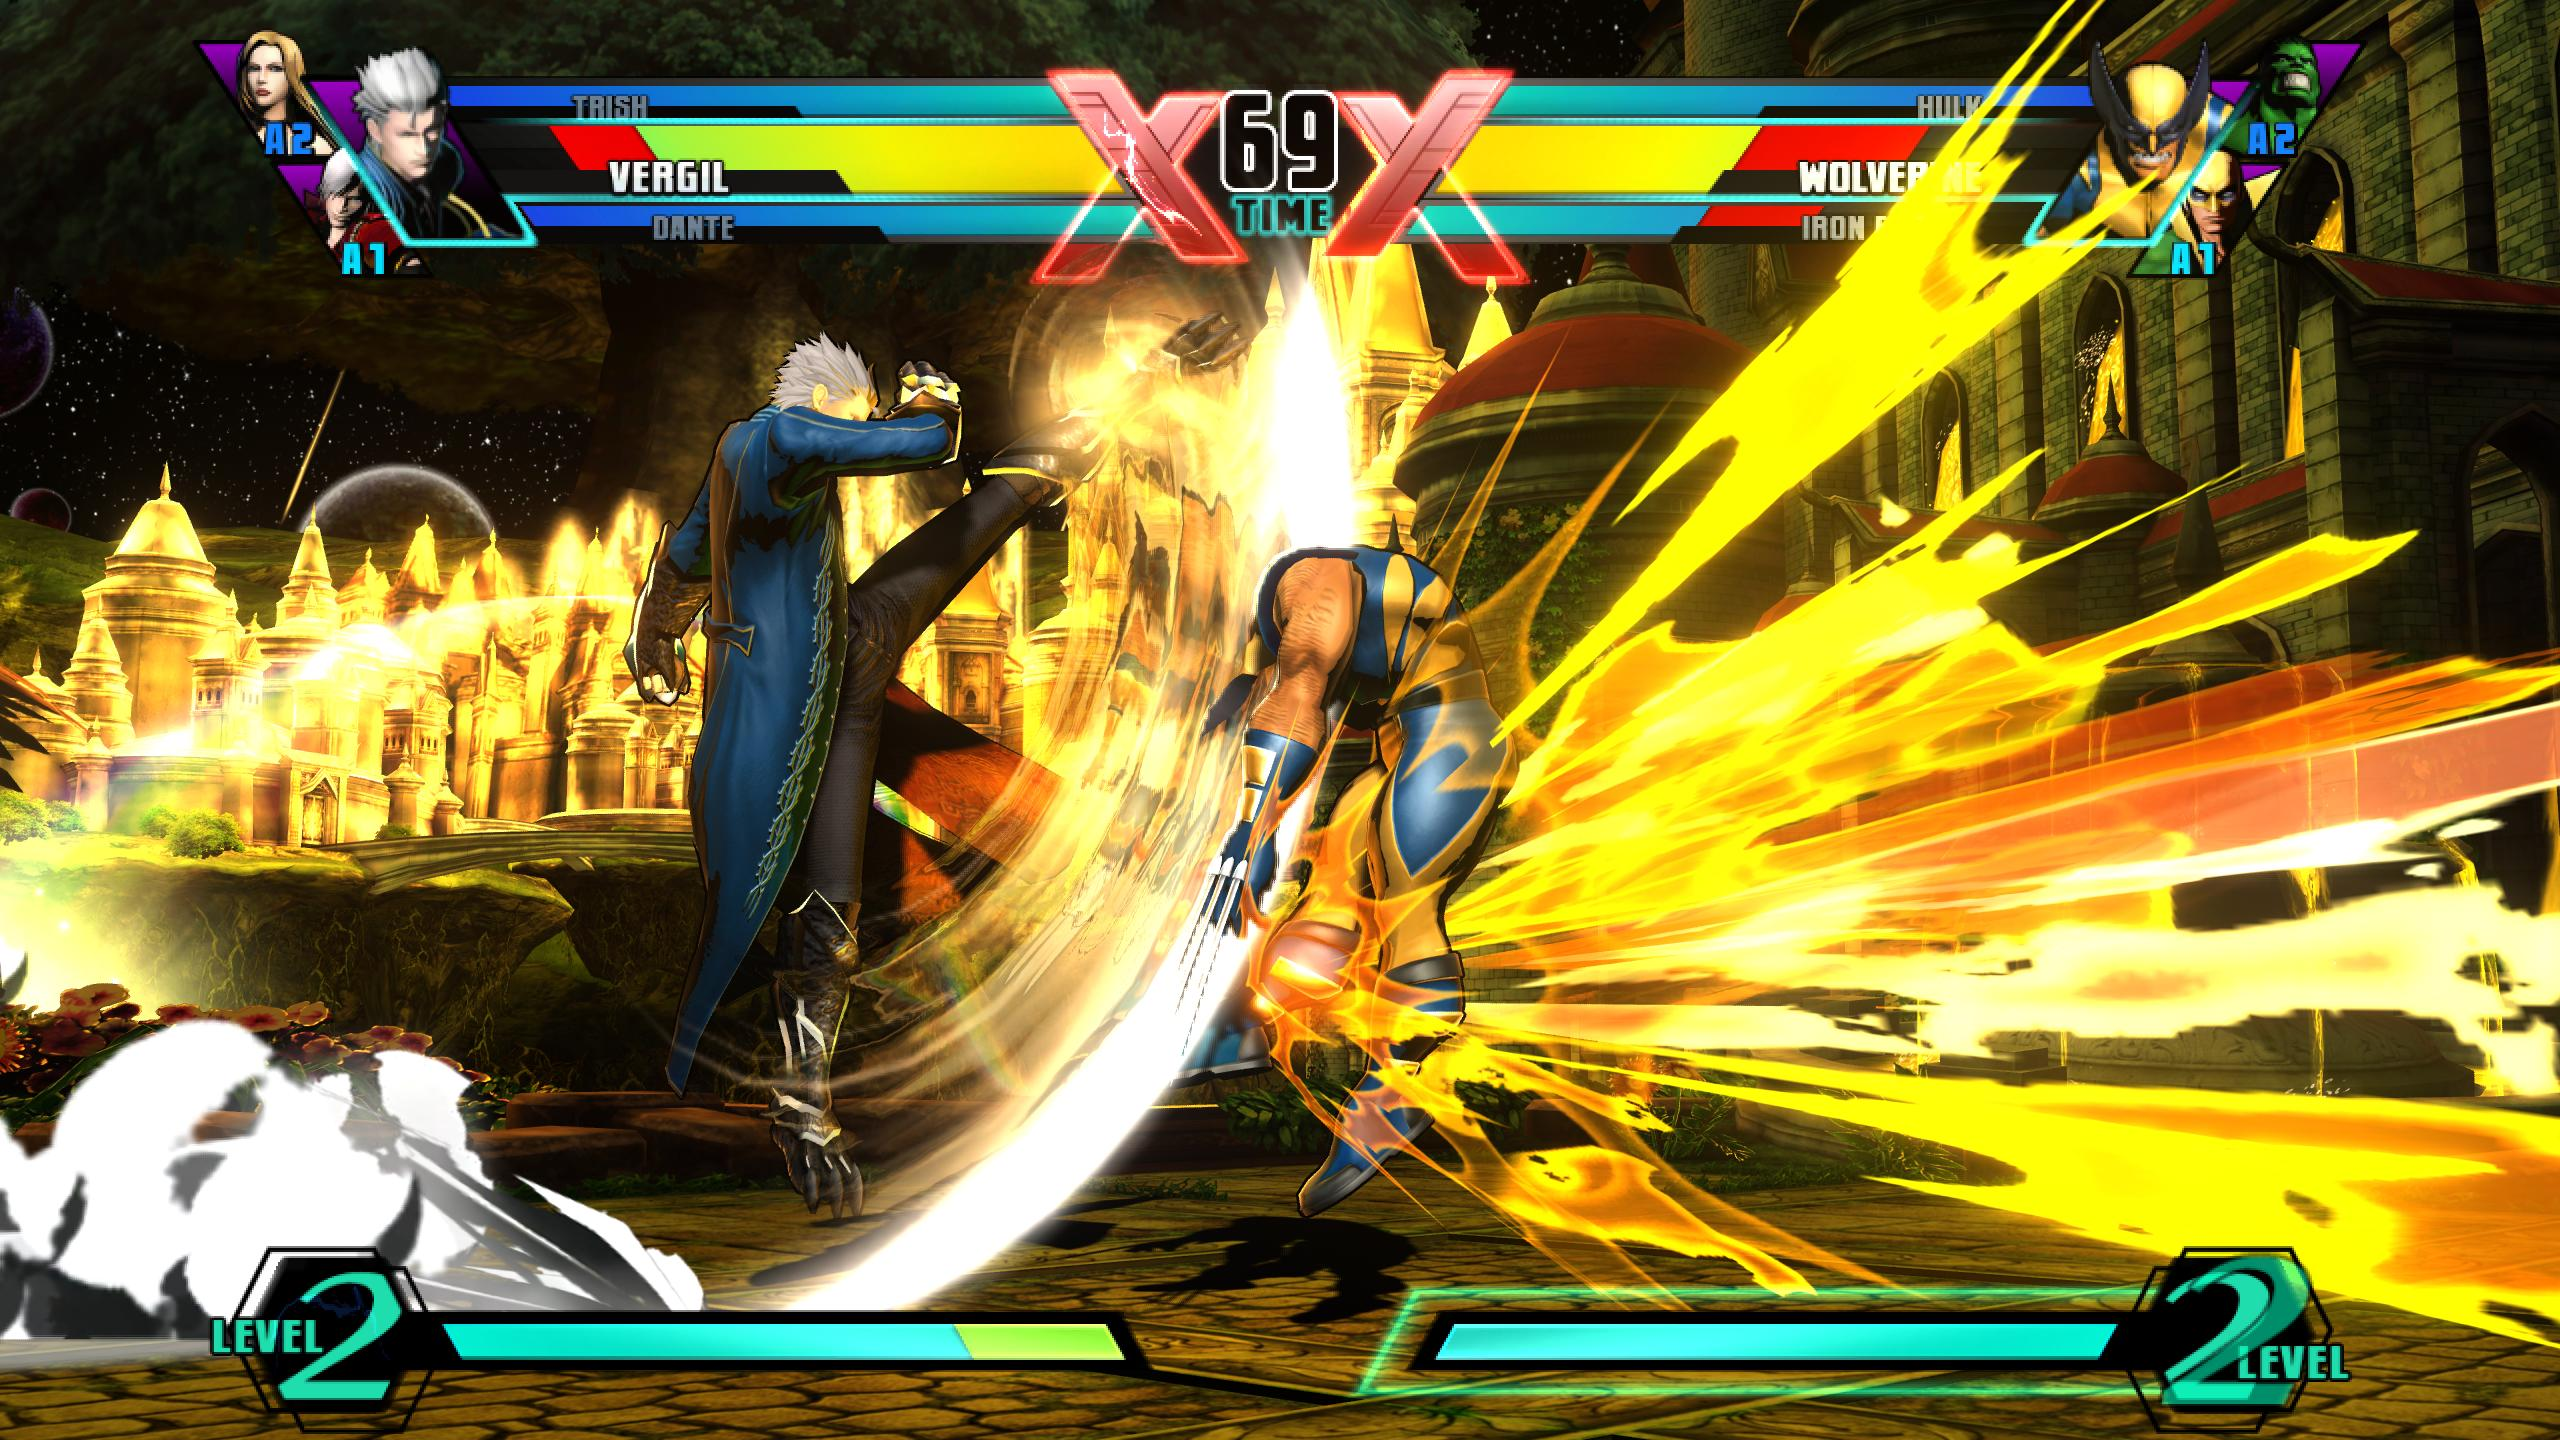 Vergil dans Ultimate Marvel vs. Capcom 3 6150586145_fc12a69400_o